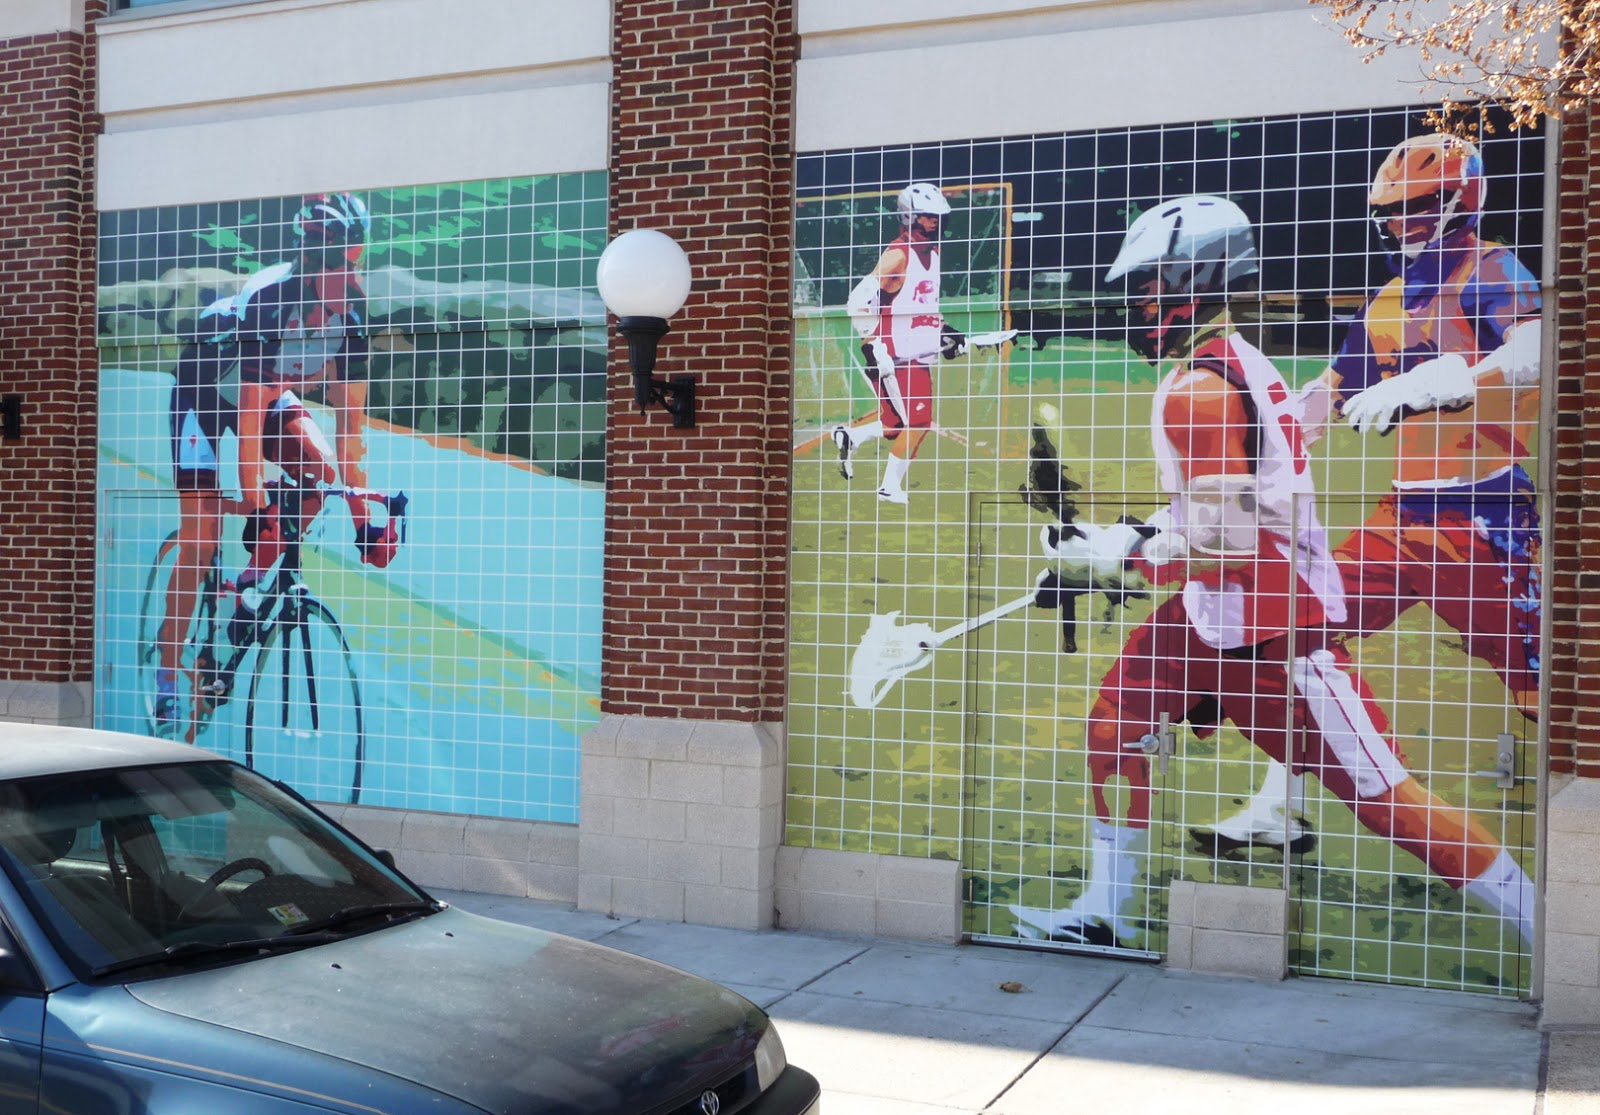 the studio view new mural installed in fairfax circle wall murals lacrosse pixersize com